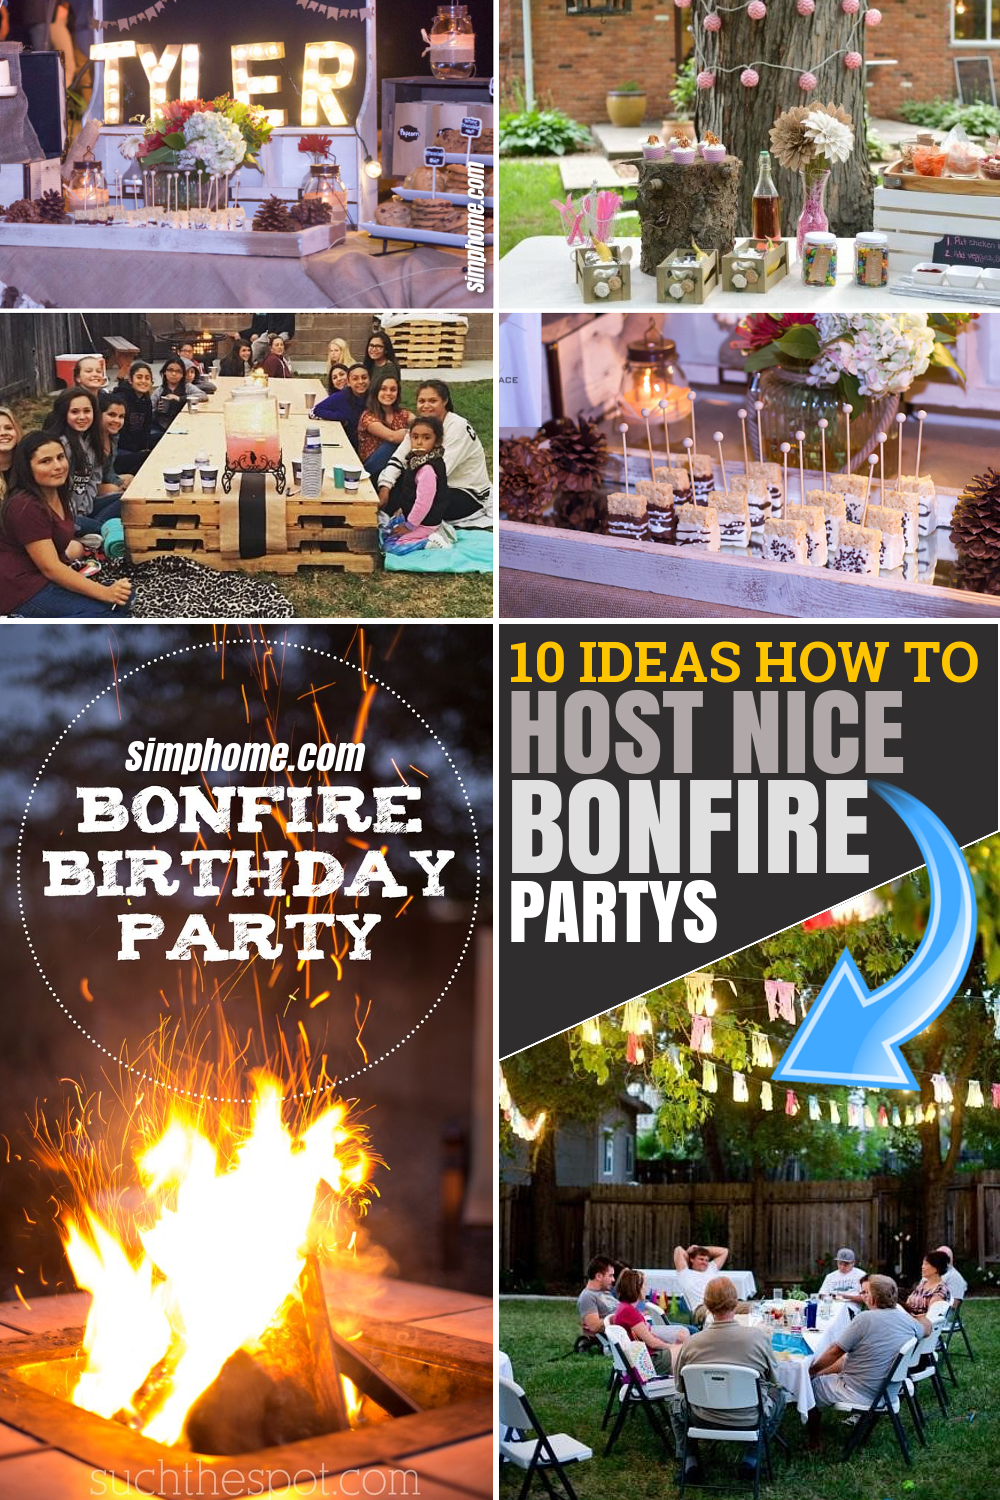 10 ideas How to host fun backyard bonfire parties via SIMPHOME.COM Featured Pinterest Image